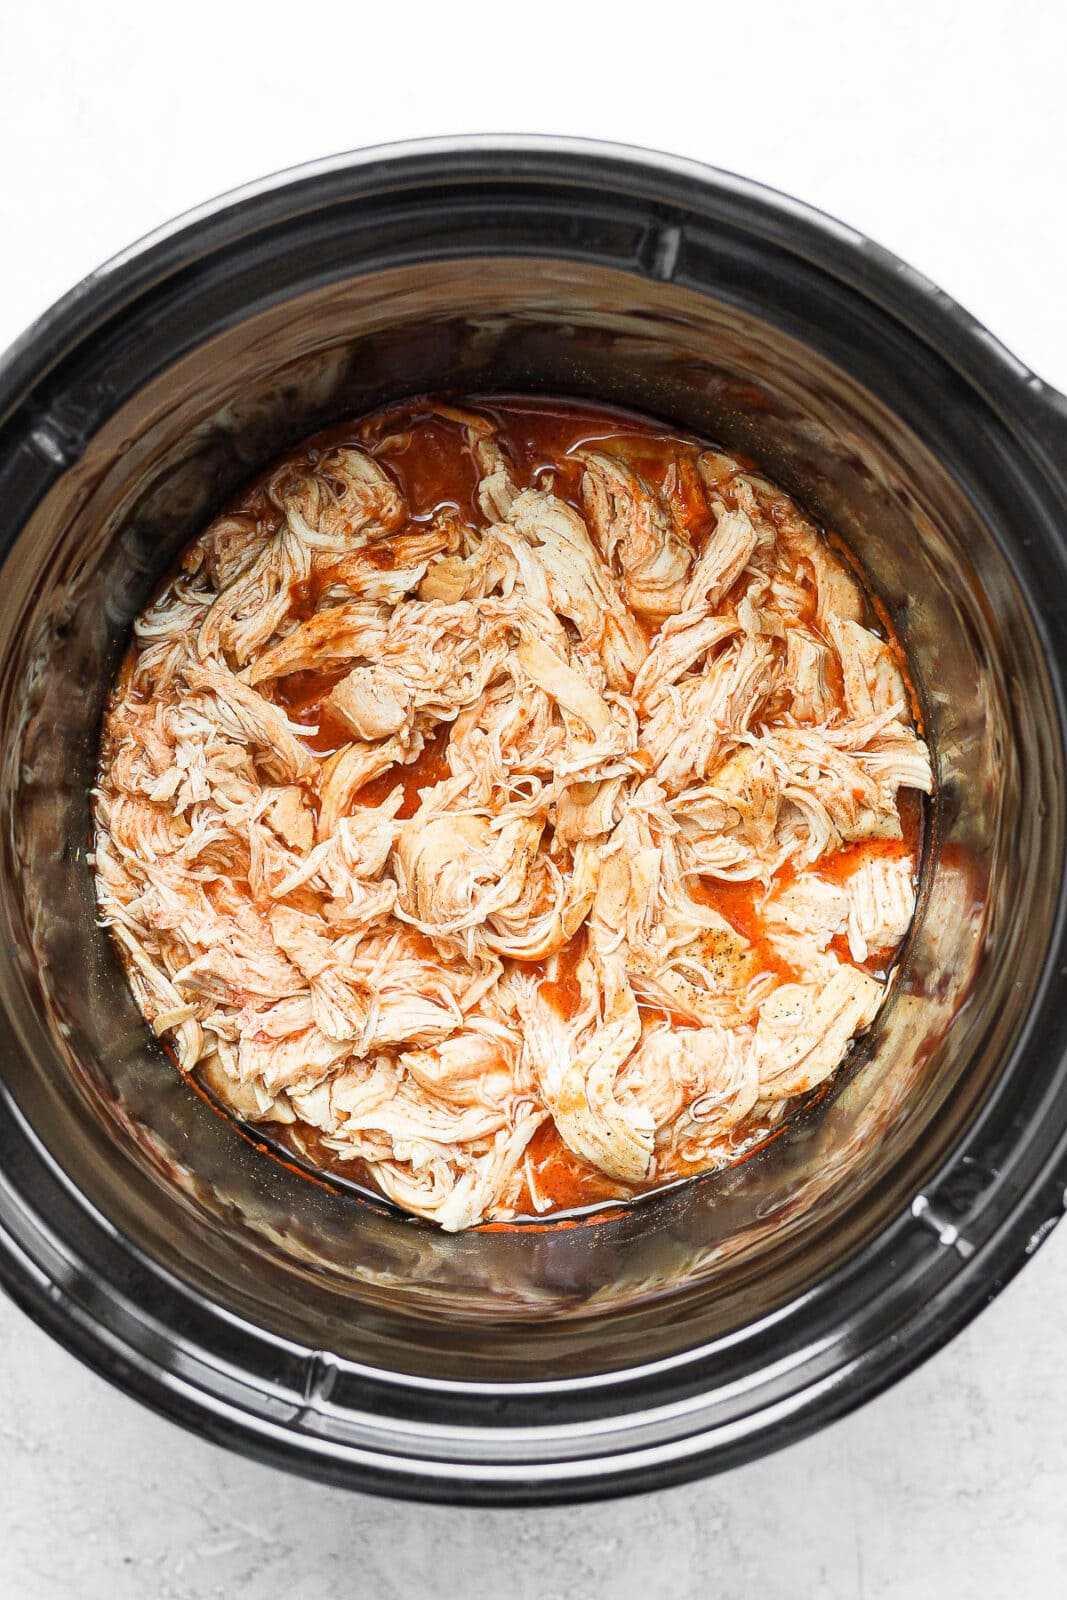 Slow cooker with shredded chicken and buffalo sauce.